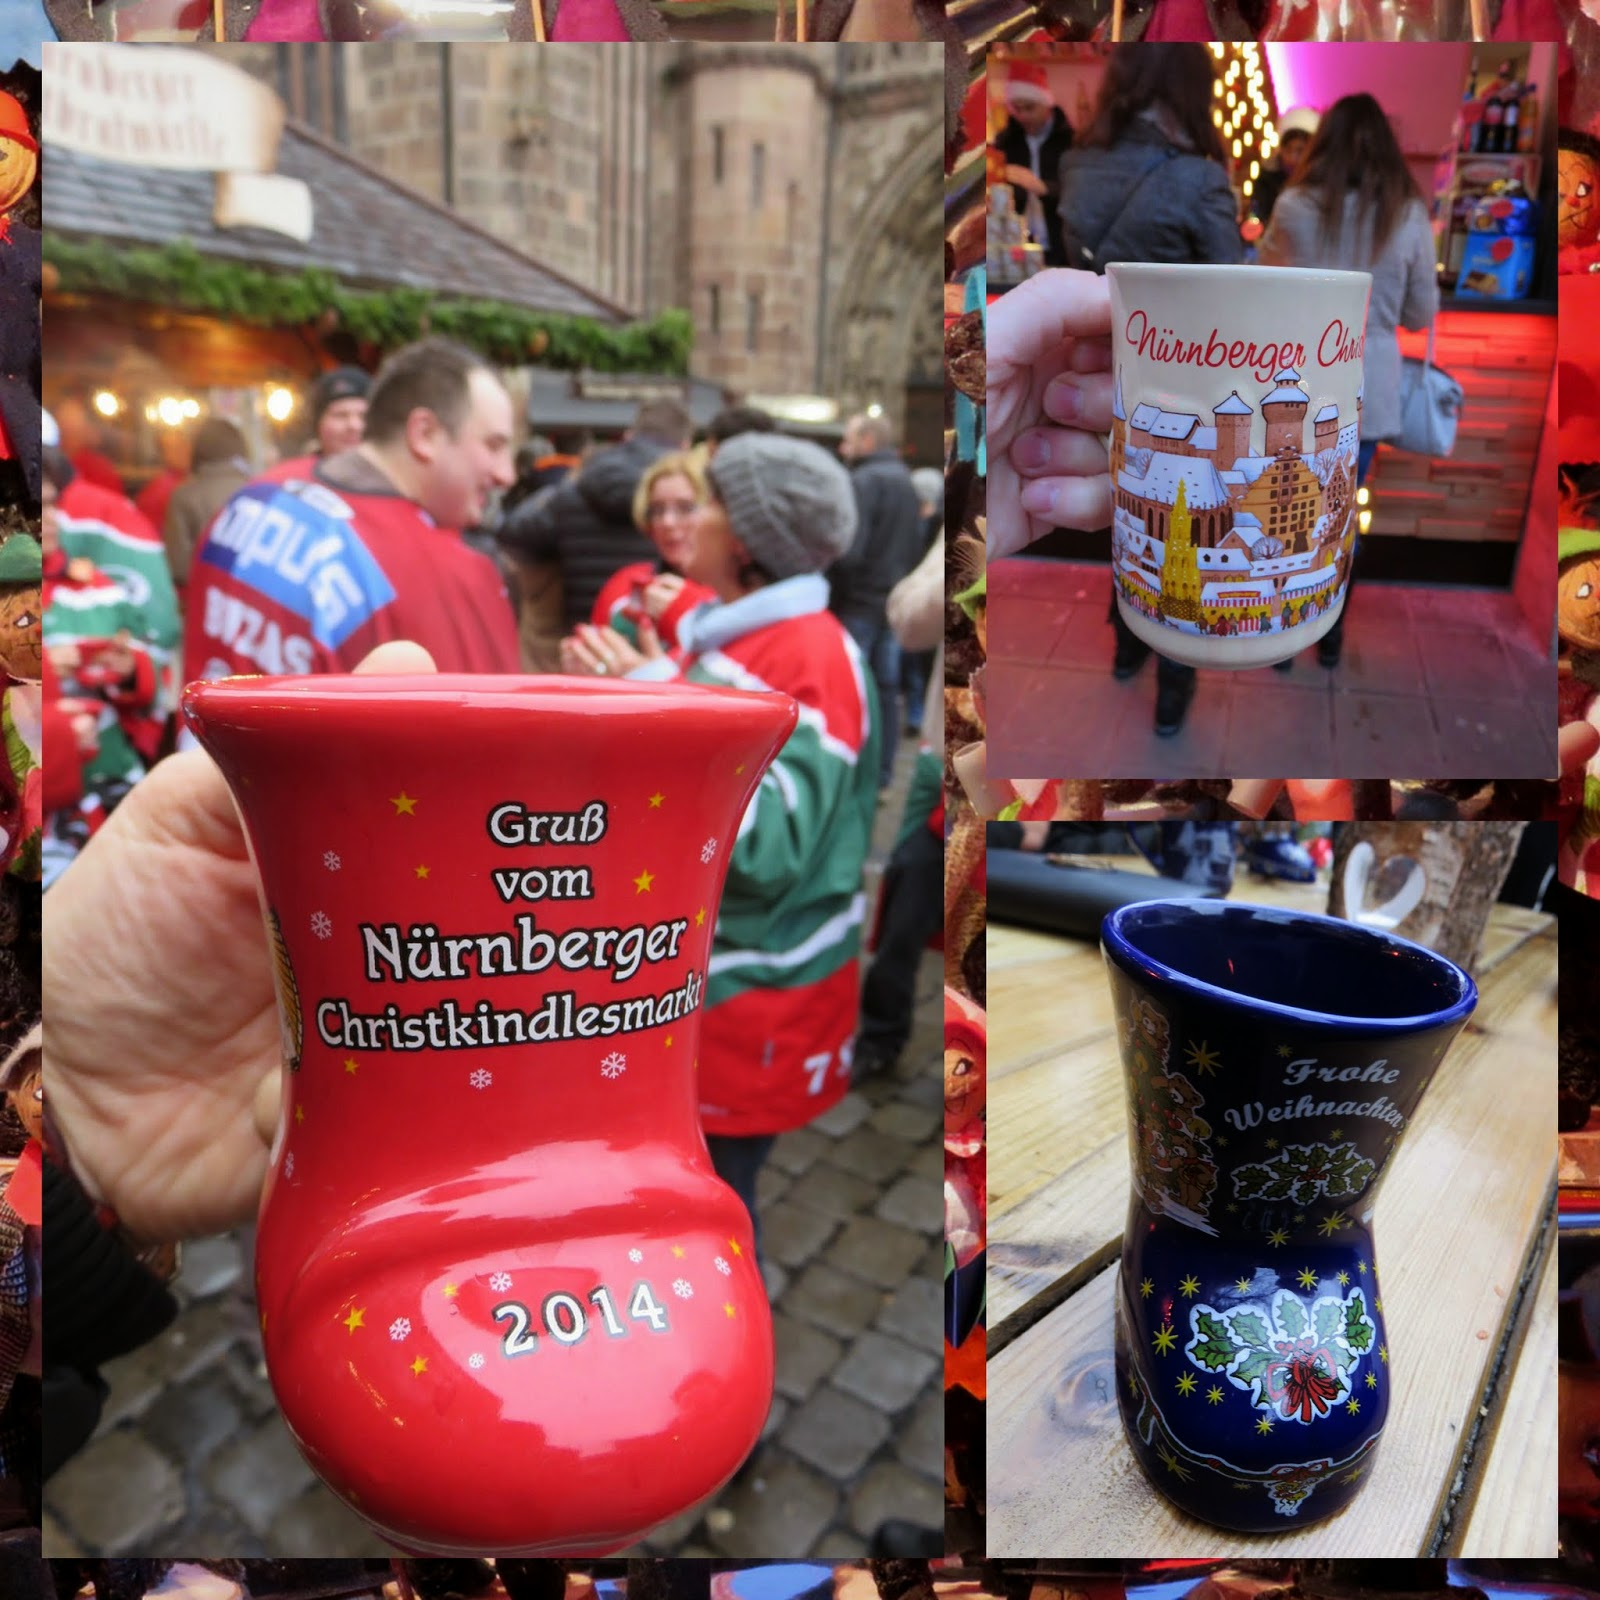 Nuremberg Christmas Market - Mugs of Gluehwein